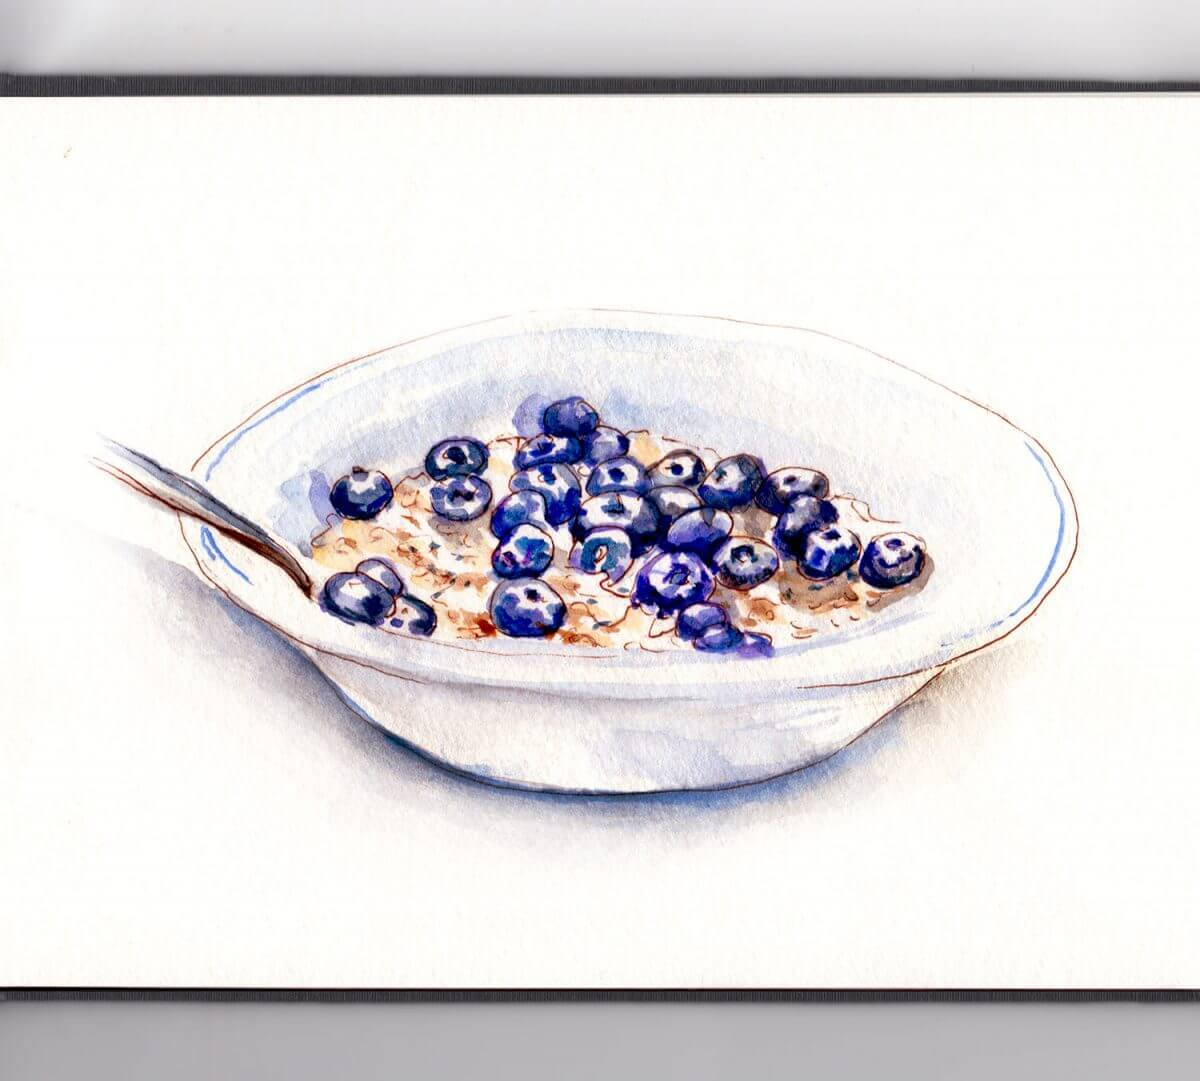 #WorldWatercolorGroup - Day 6 - Oatmeal and Blueberries - Doodlewash